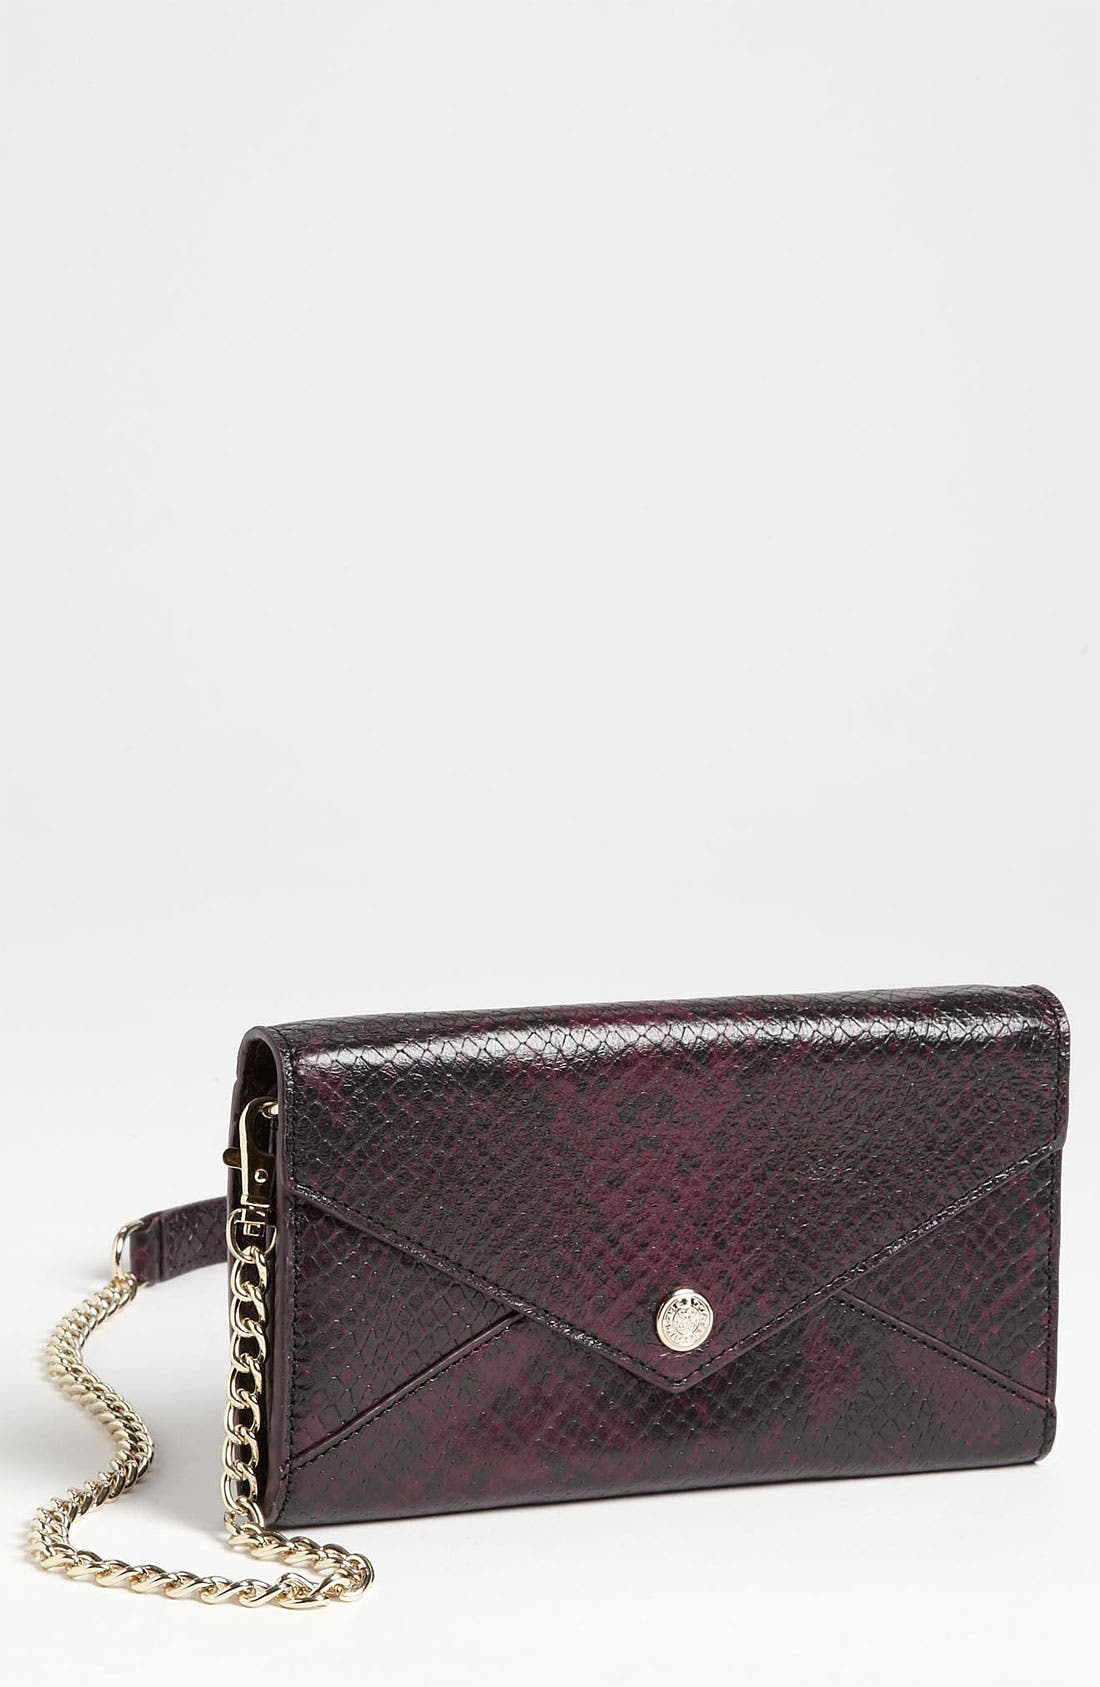 Alternate Image 1 Selected - Rebecca Minkoff Wallet on a Chain